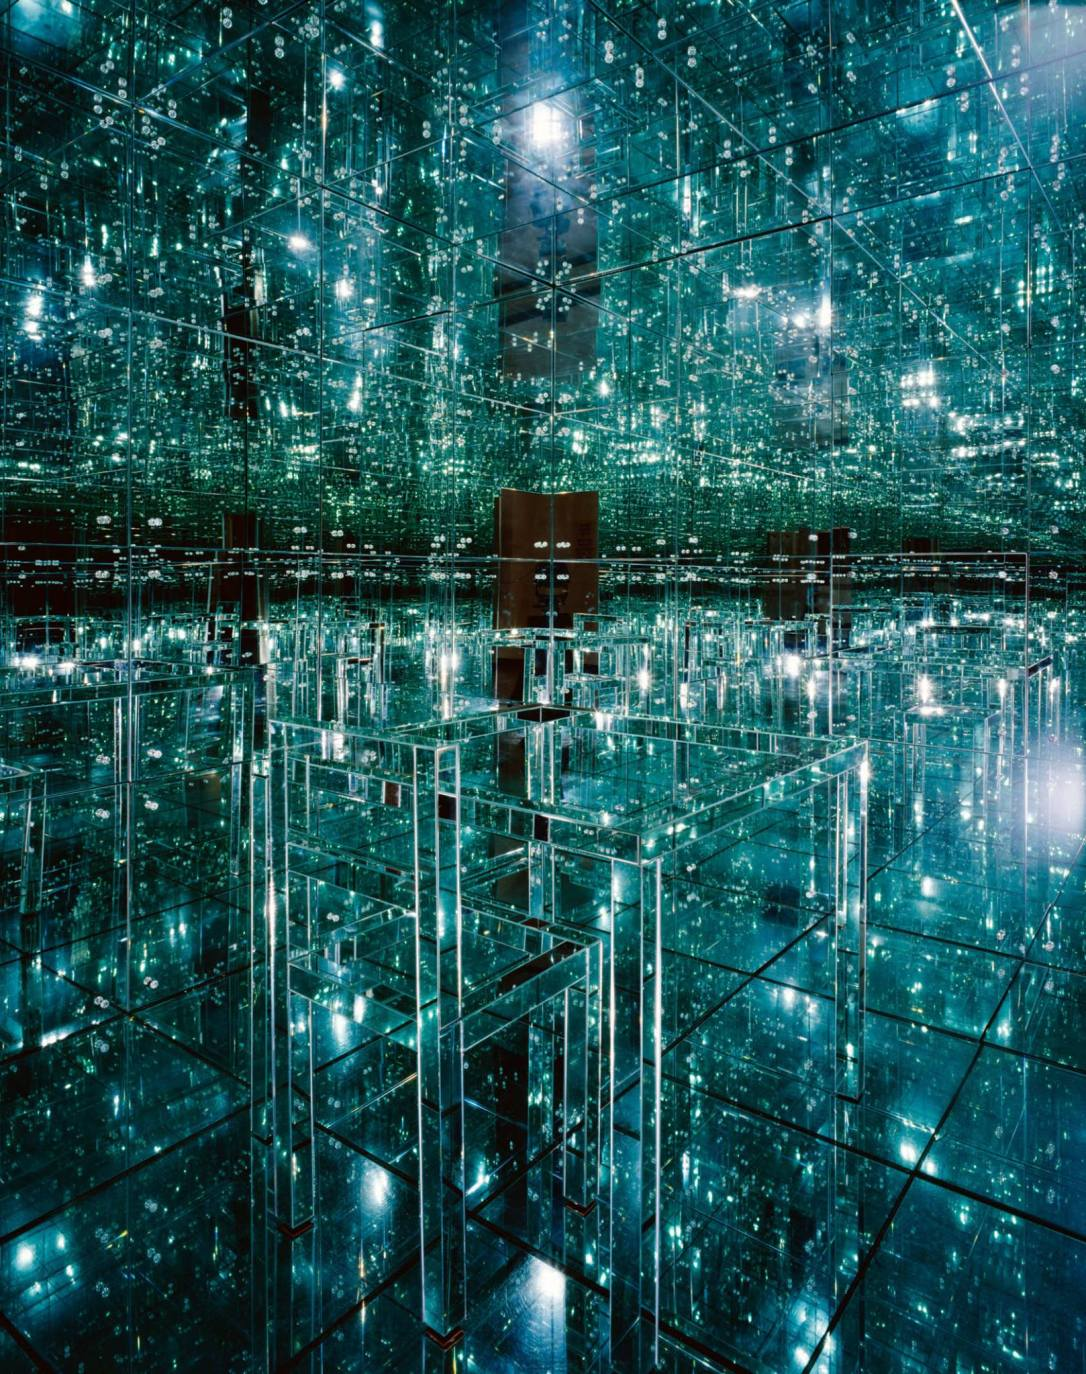 Lucas Samaras, Mirrored Room (1966)